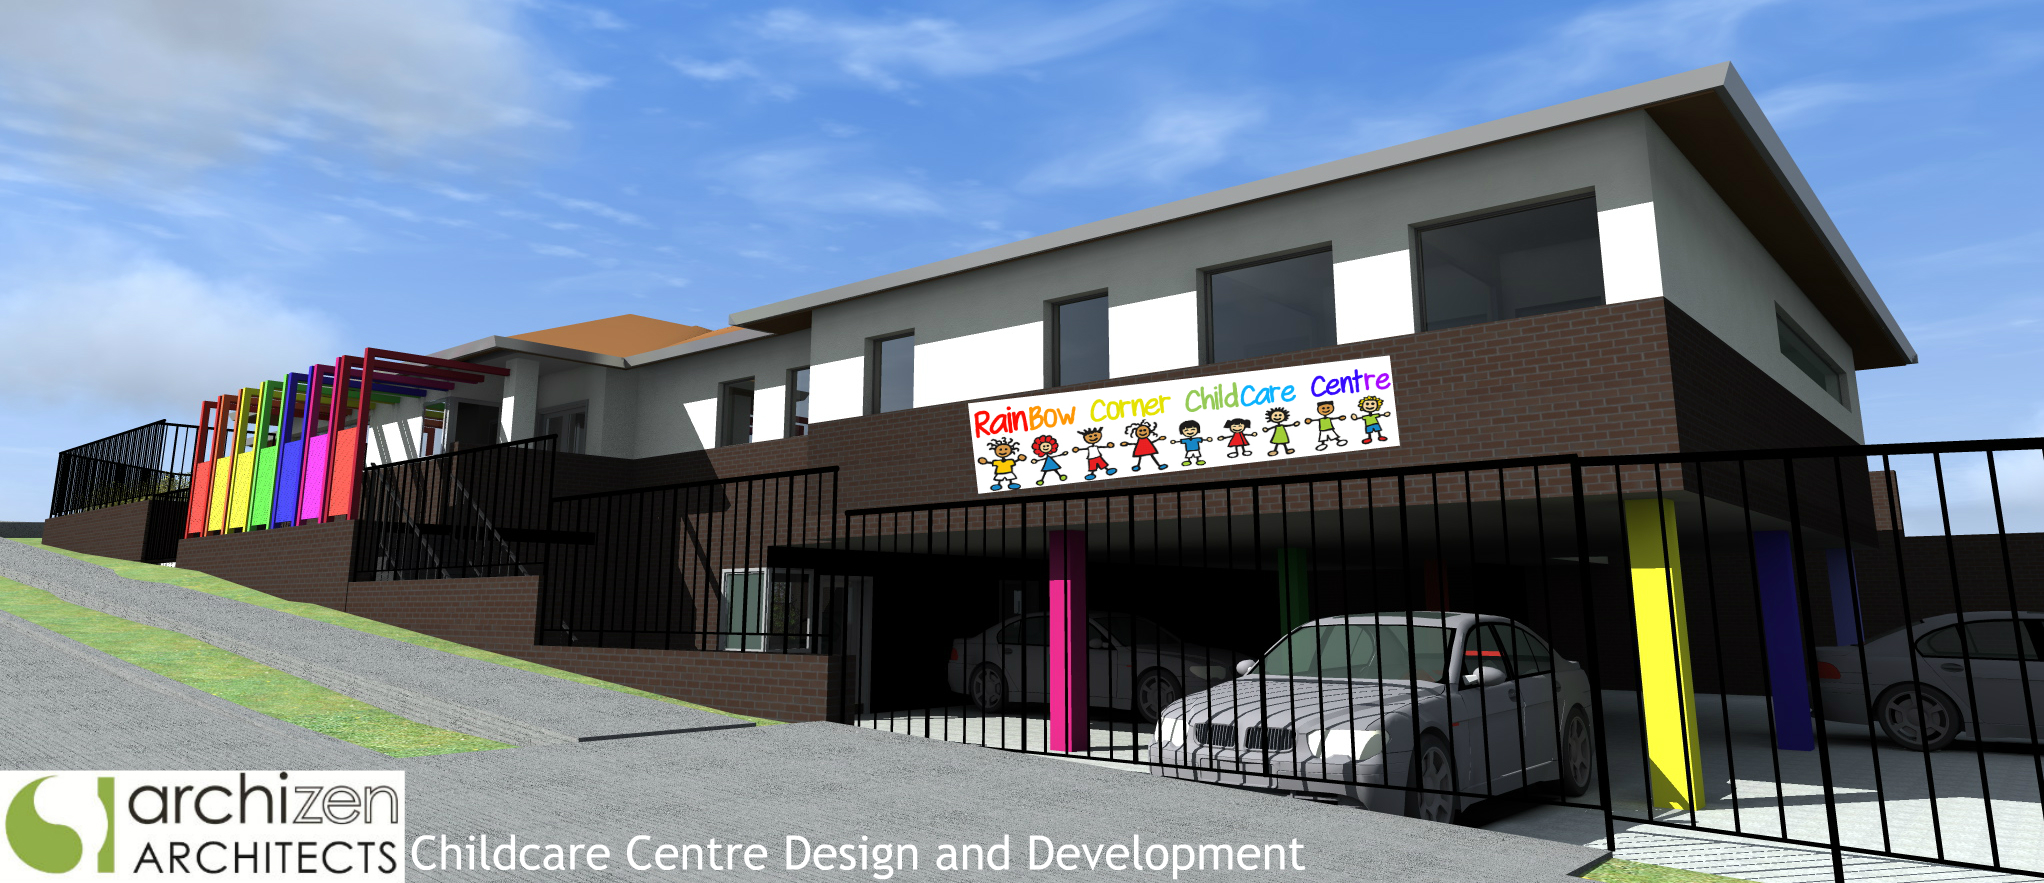 Mortdale Childcare Architectural Design Preschool Long Day Care Sydney Hurstville Council Architects Archizen Kindergarten Parramatta Liverpool North Sydney Inner West Sydney Eastern Suburbs Sutherland Shire